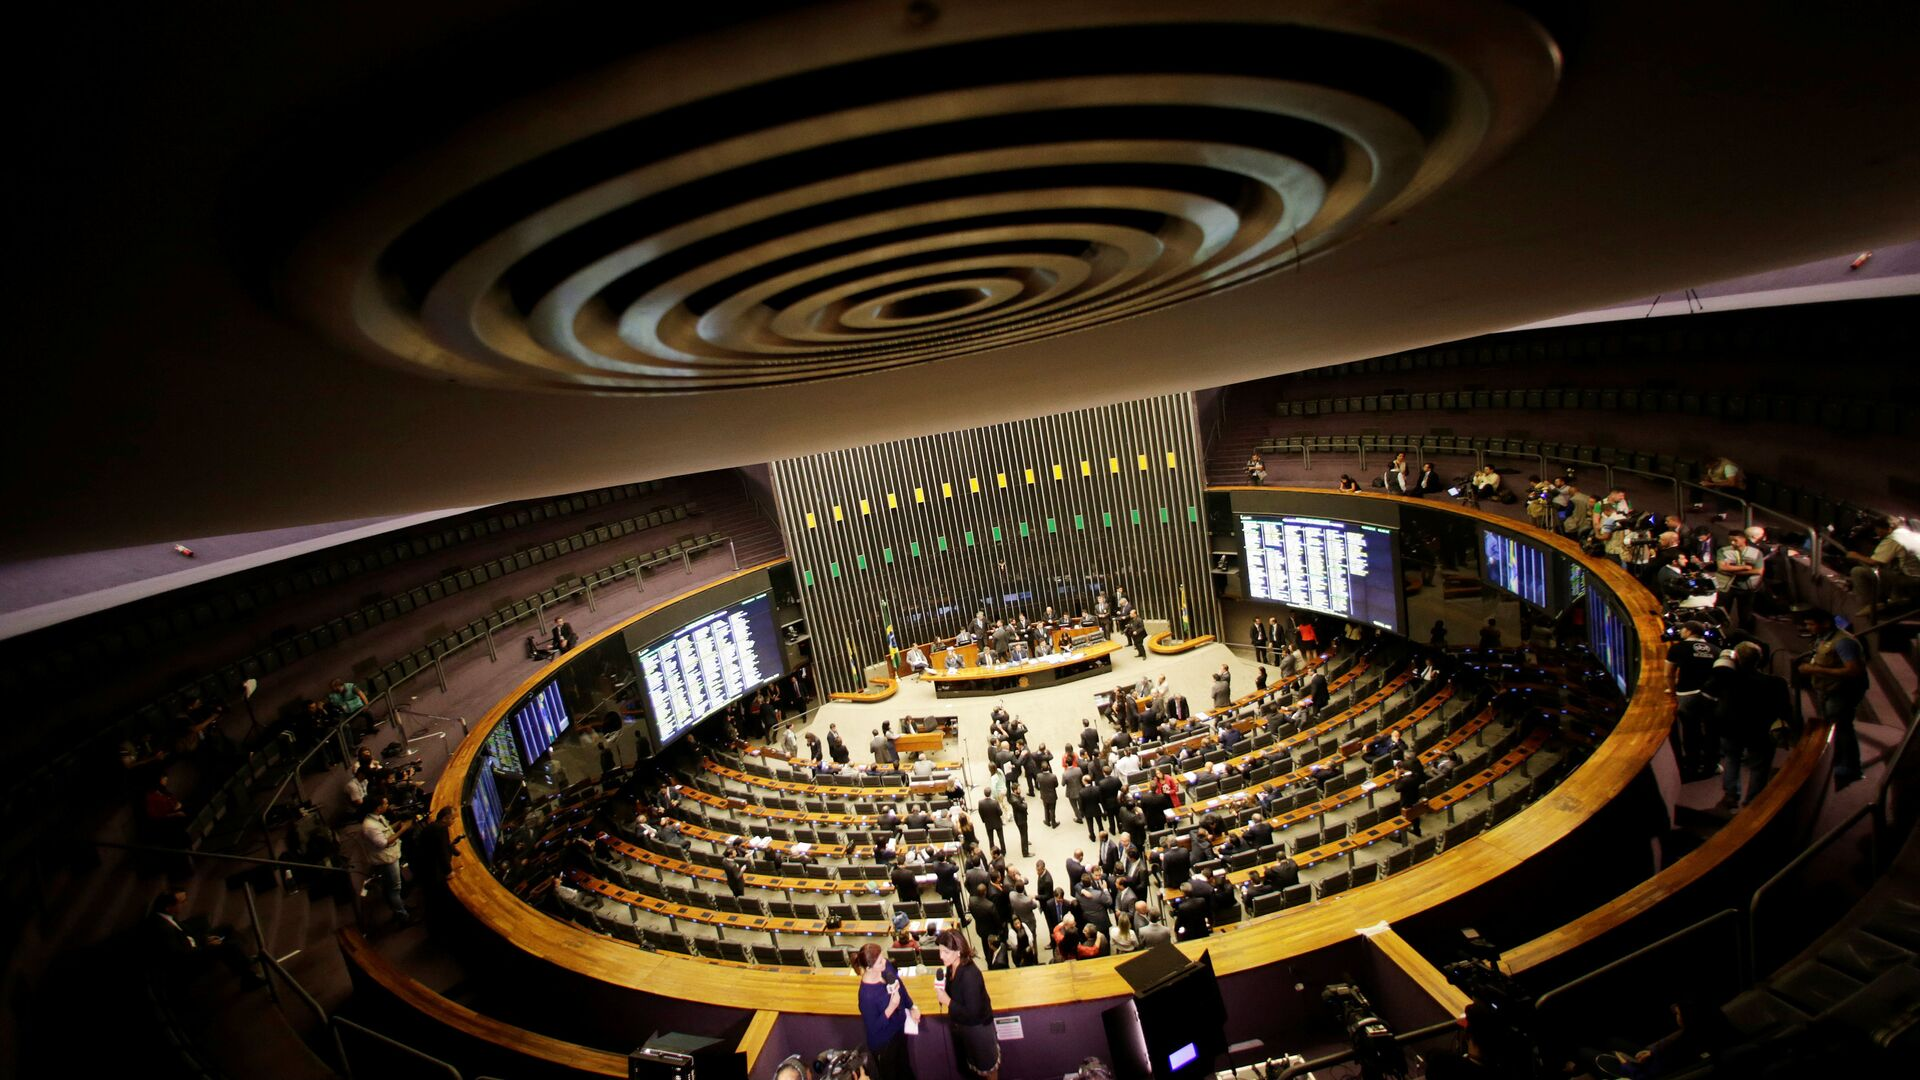 A general view is seen of the plenary chamber of deputies during the session to elect the new president of the chamber of deputies in the National Congress in Brasilia, Brazil July 13, 2016.  - Sputnik Mundo, 1920, 19.02.2021